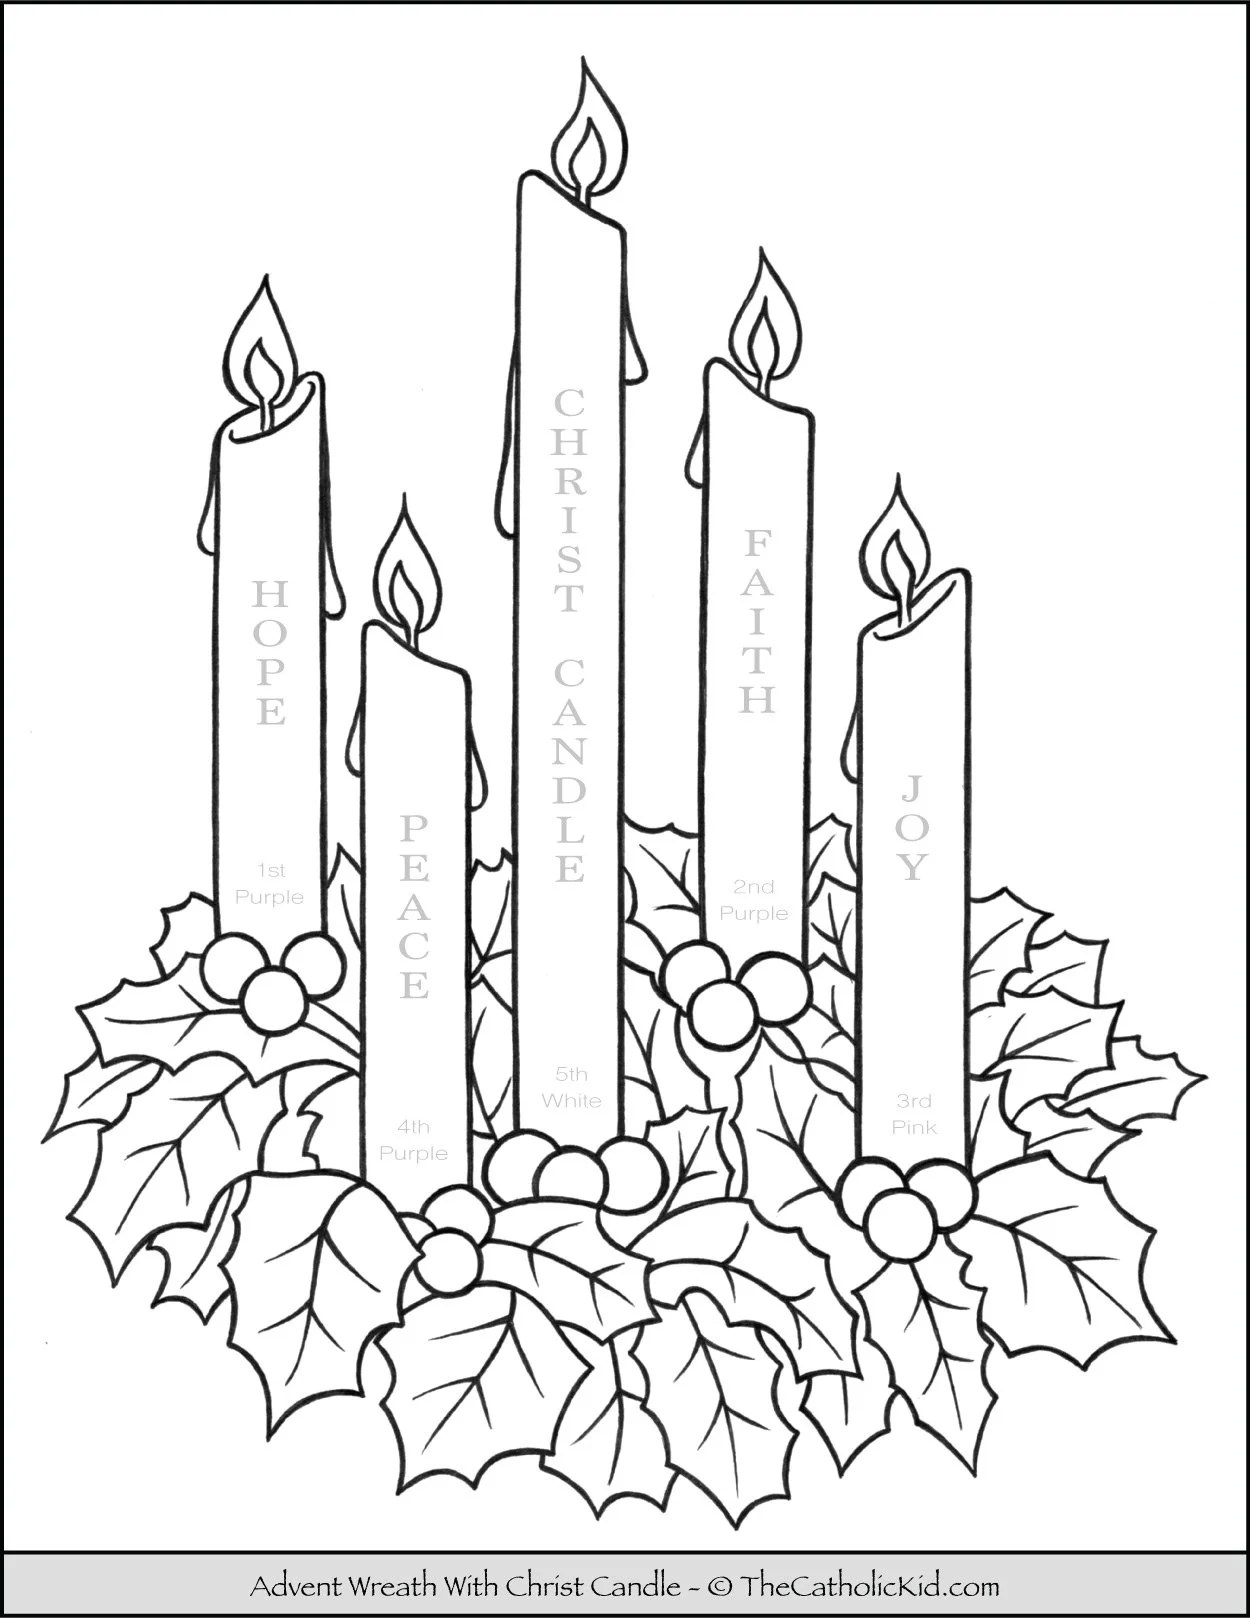 hight resolution of Advent Wreath Coloring Page With Candle Names \u0026 Meanings -  TheCatholicKid.com